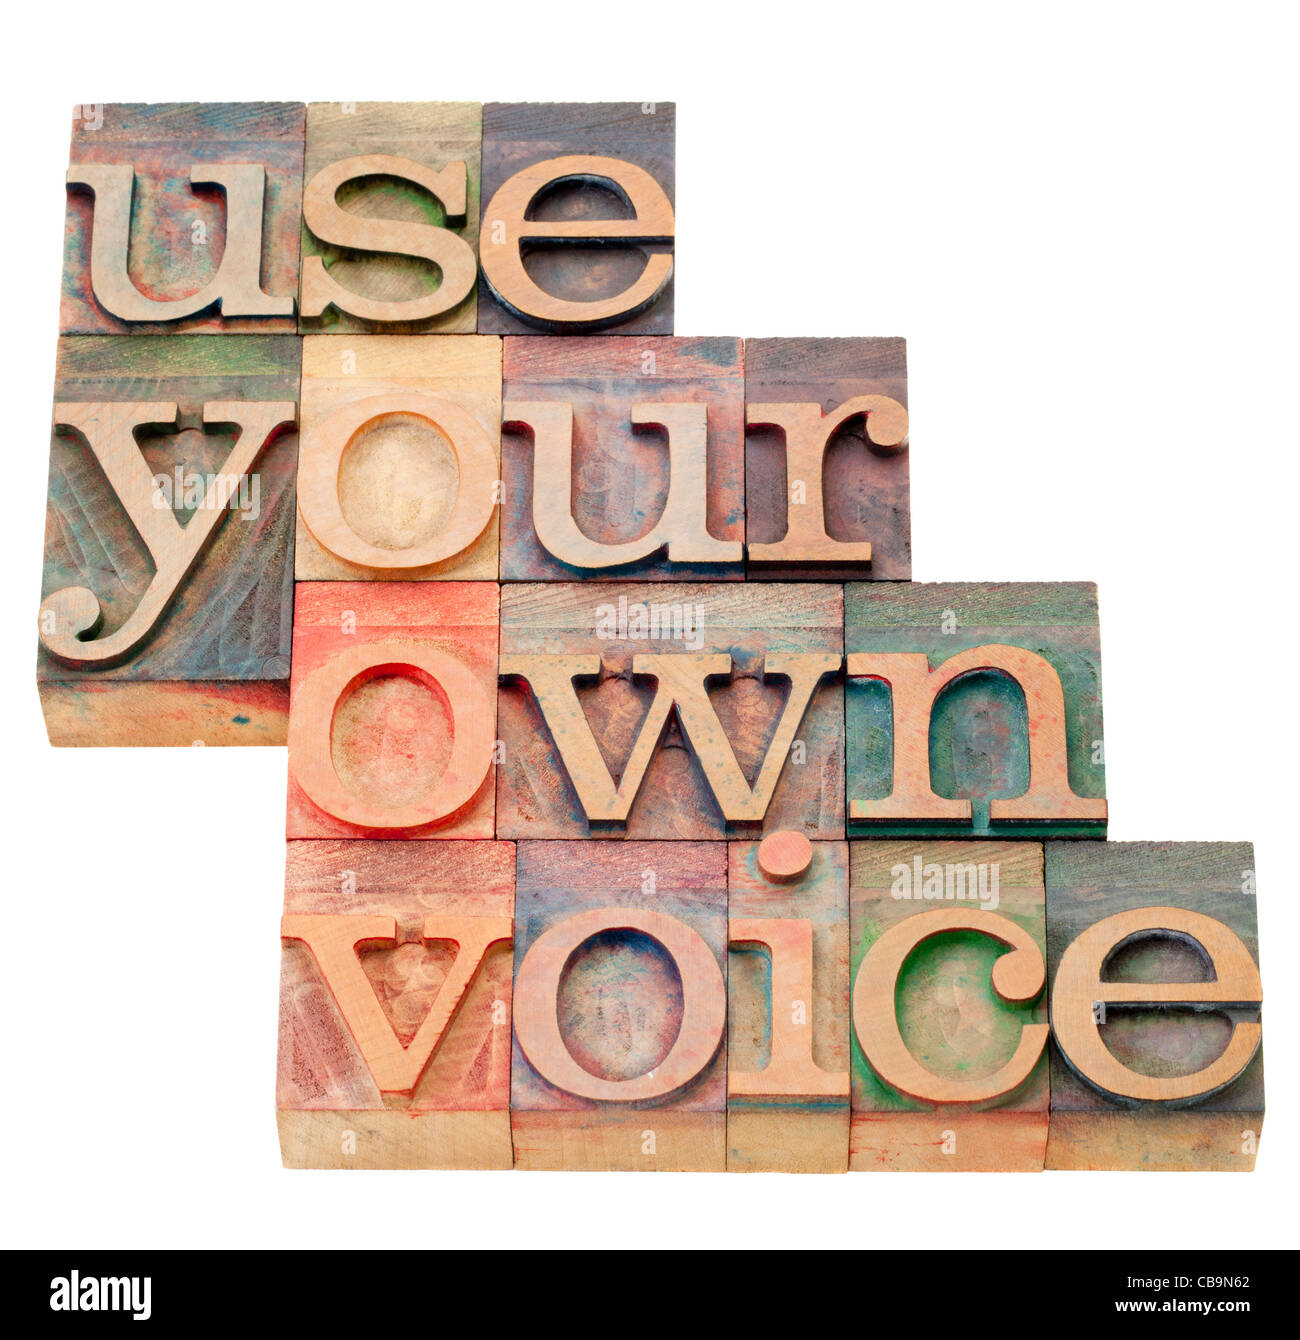 use your own voice advice - isolated text in vintage wood letterpress printing blocks - Stock Image